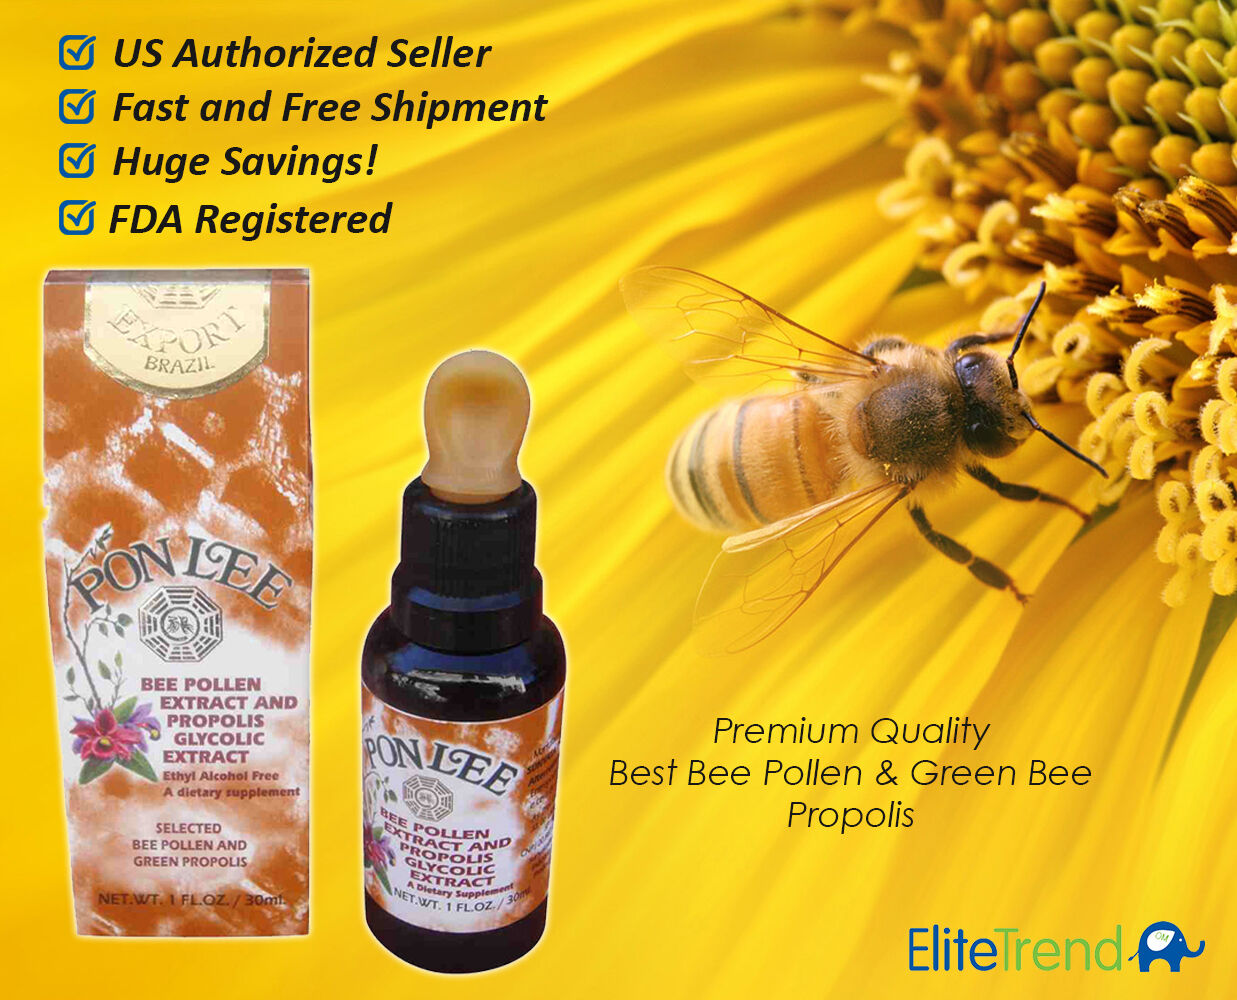 Extract of propolis